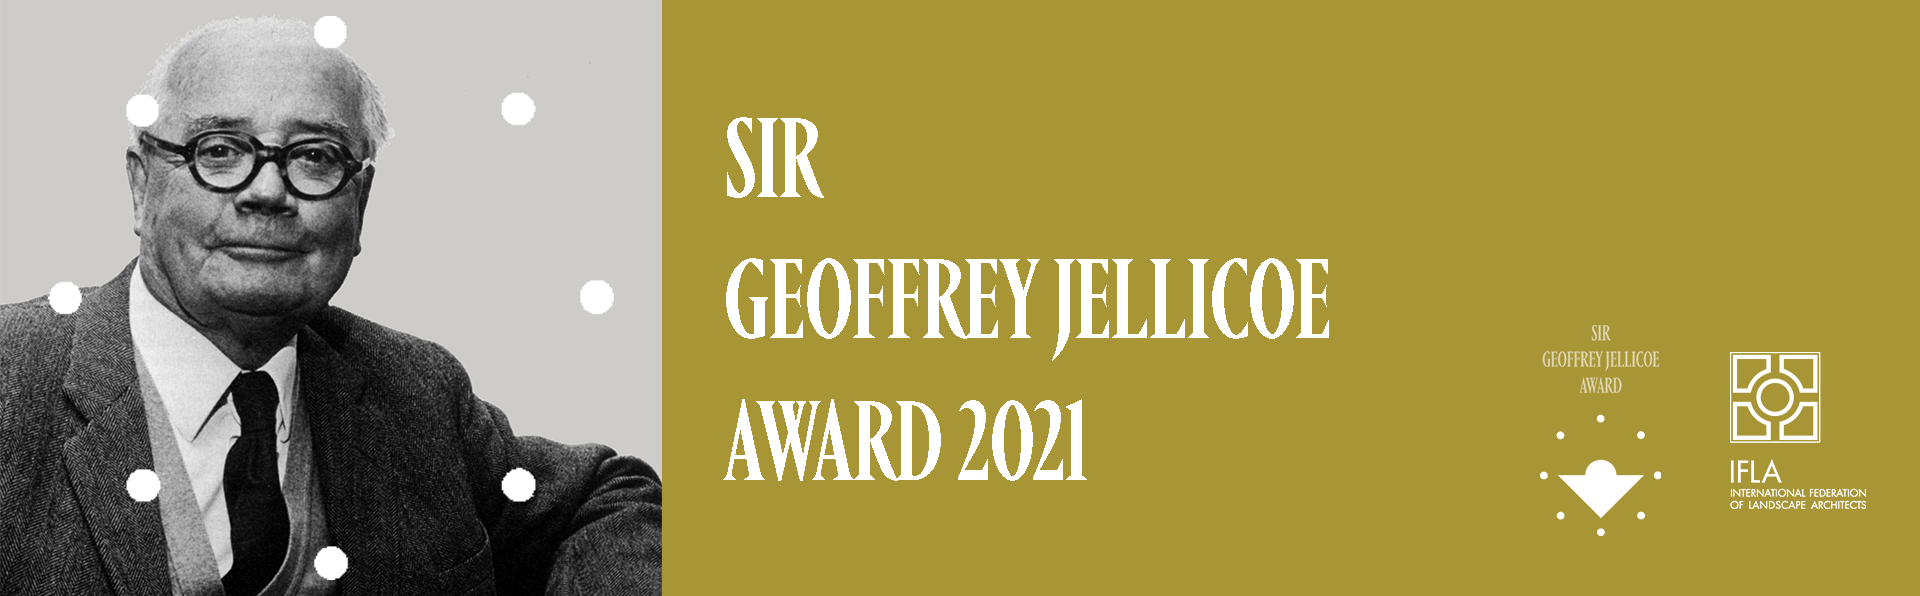 2021 Sir Geoffrey Jellicoe Award is open - deadline 31 May 2021!